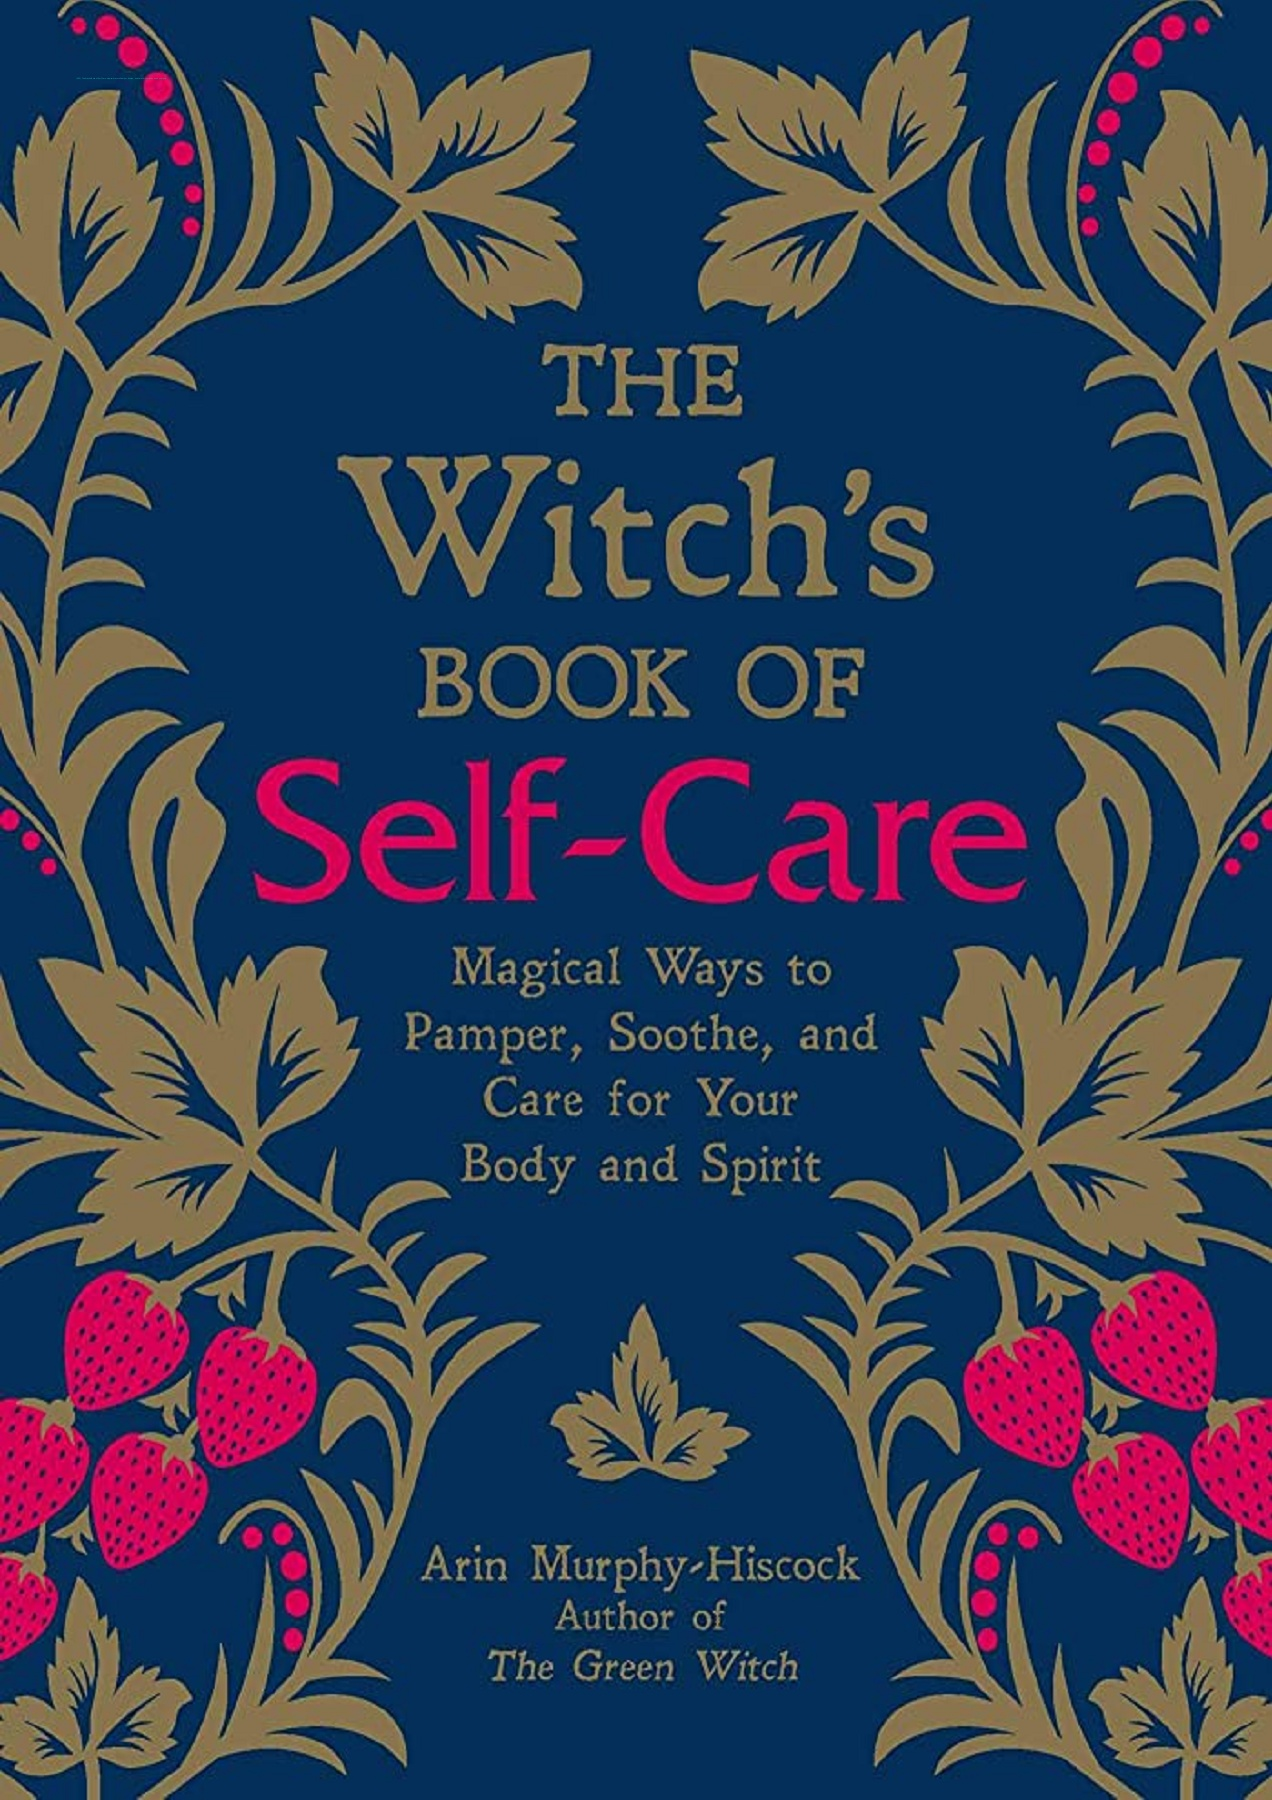 Pdf The Witch S Book Of Self Care Magical Ways To Pamper Soothe And Care For Your Body And Spirit Ipad Pages 1 3 Text Version Anyflip